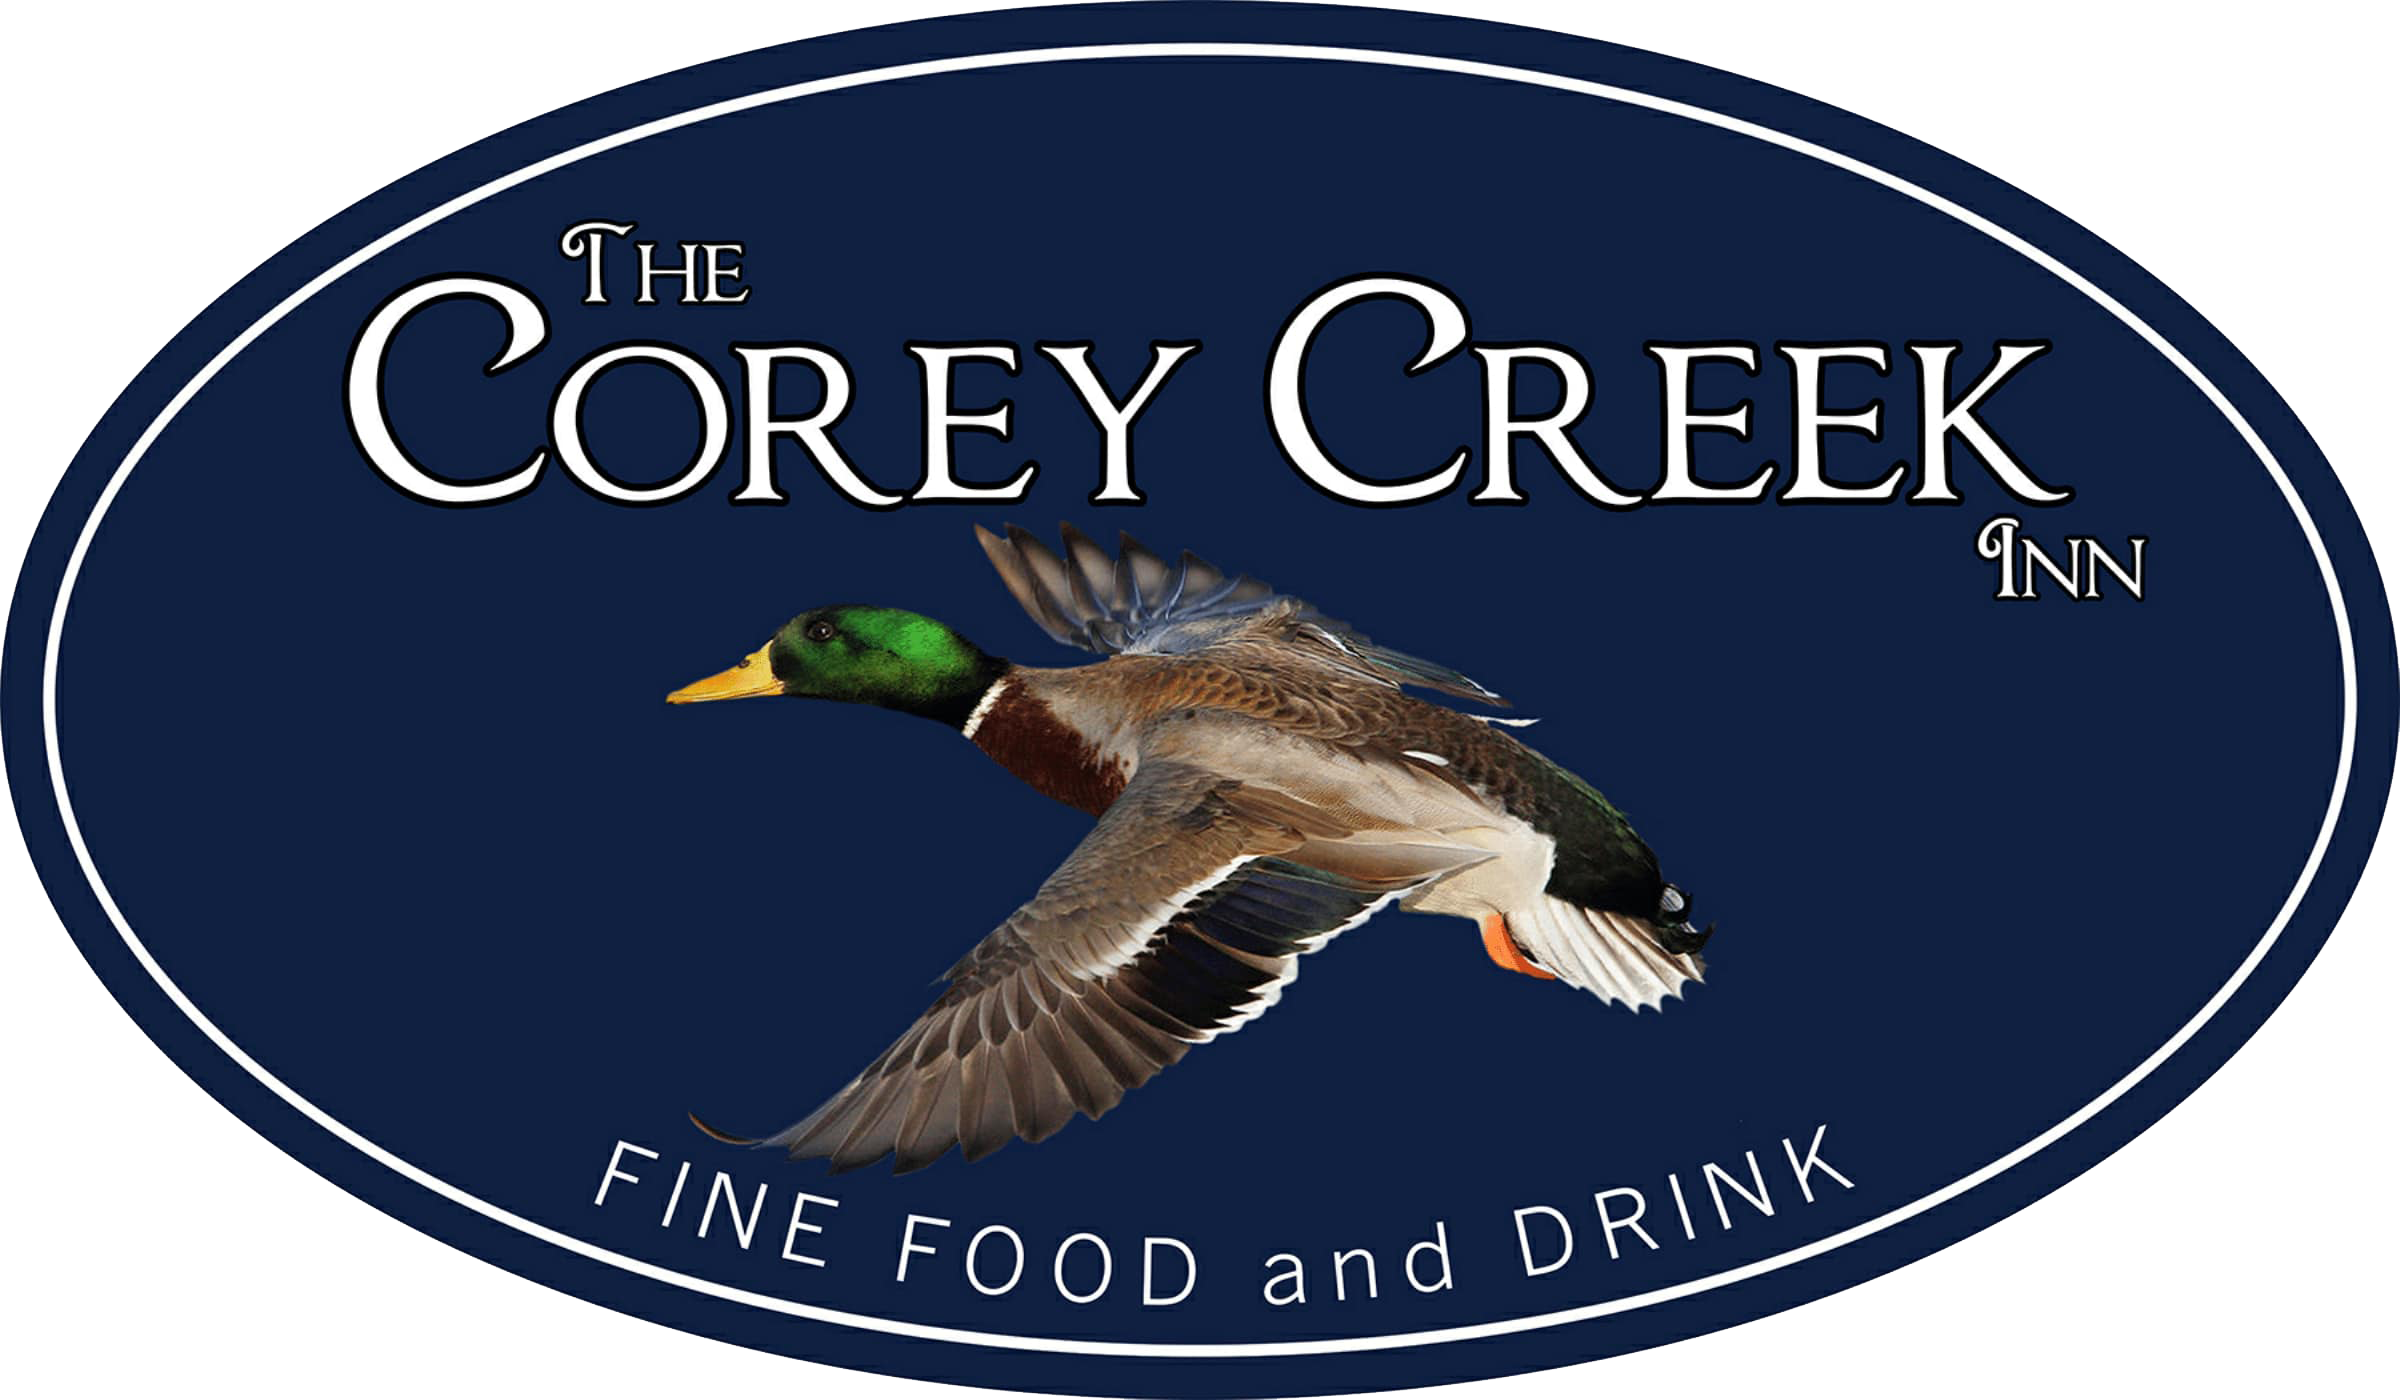 Corey_Creek_Full_Sign_Transparent_Background